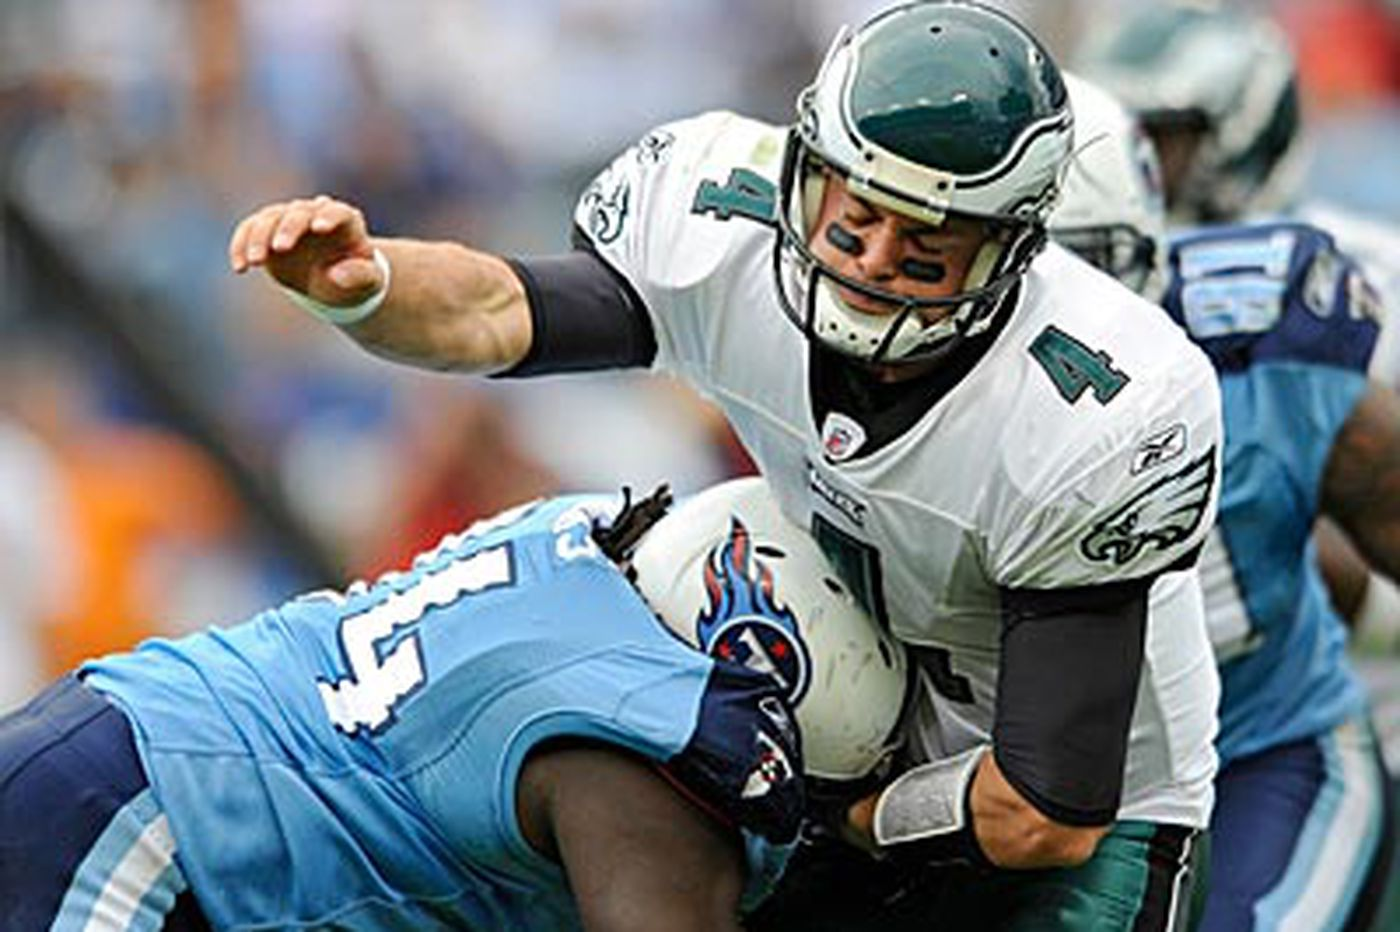 Kolb is prepared to start and do his part for Eagles